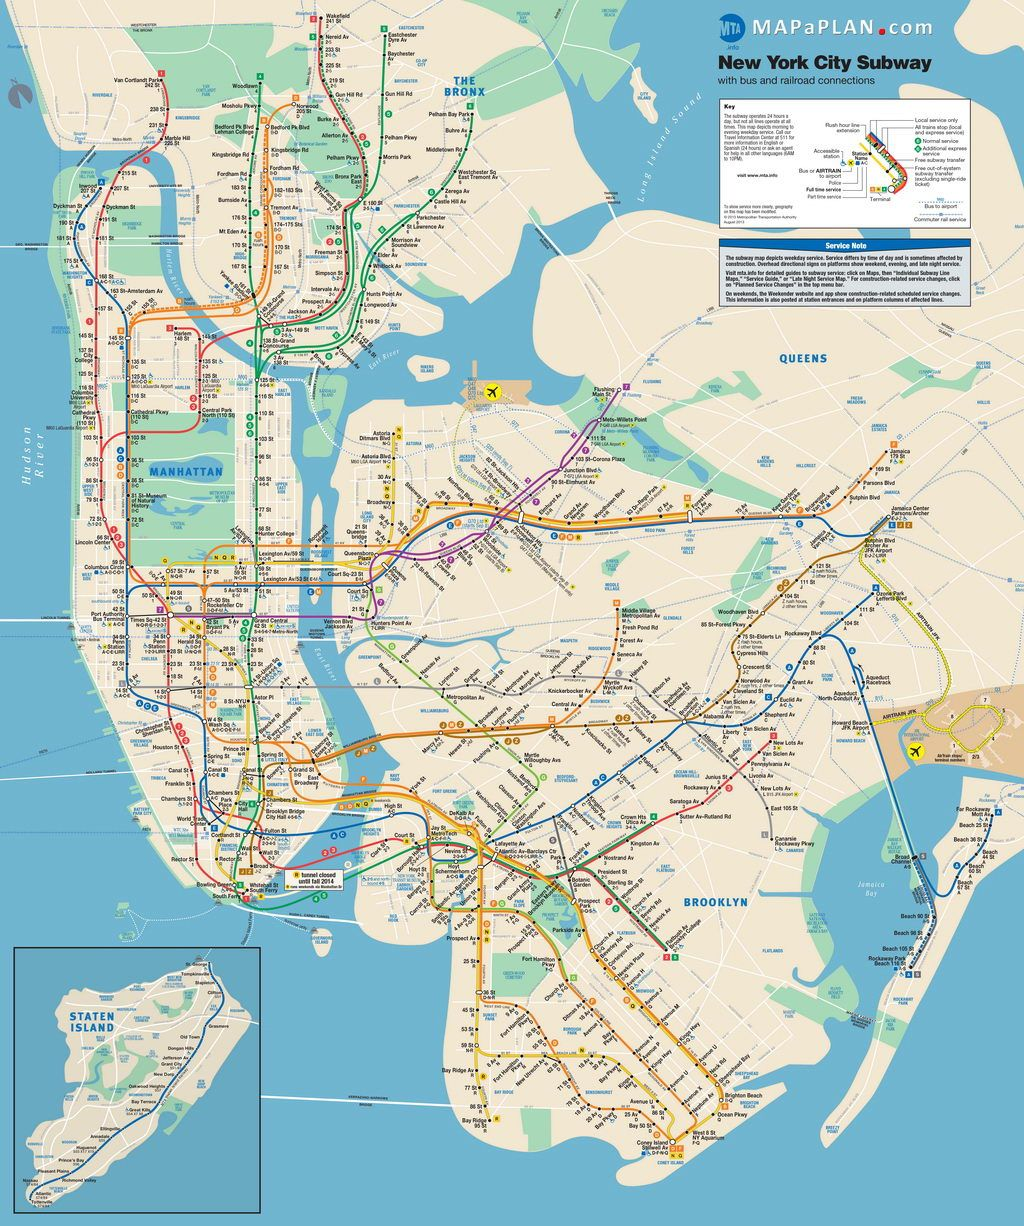 Free Printable Map Of New York City.Lots Of Free Printable Maps Of Manhattan Great For Tourists If You